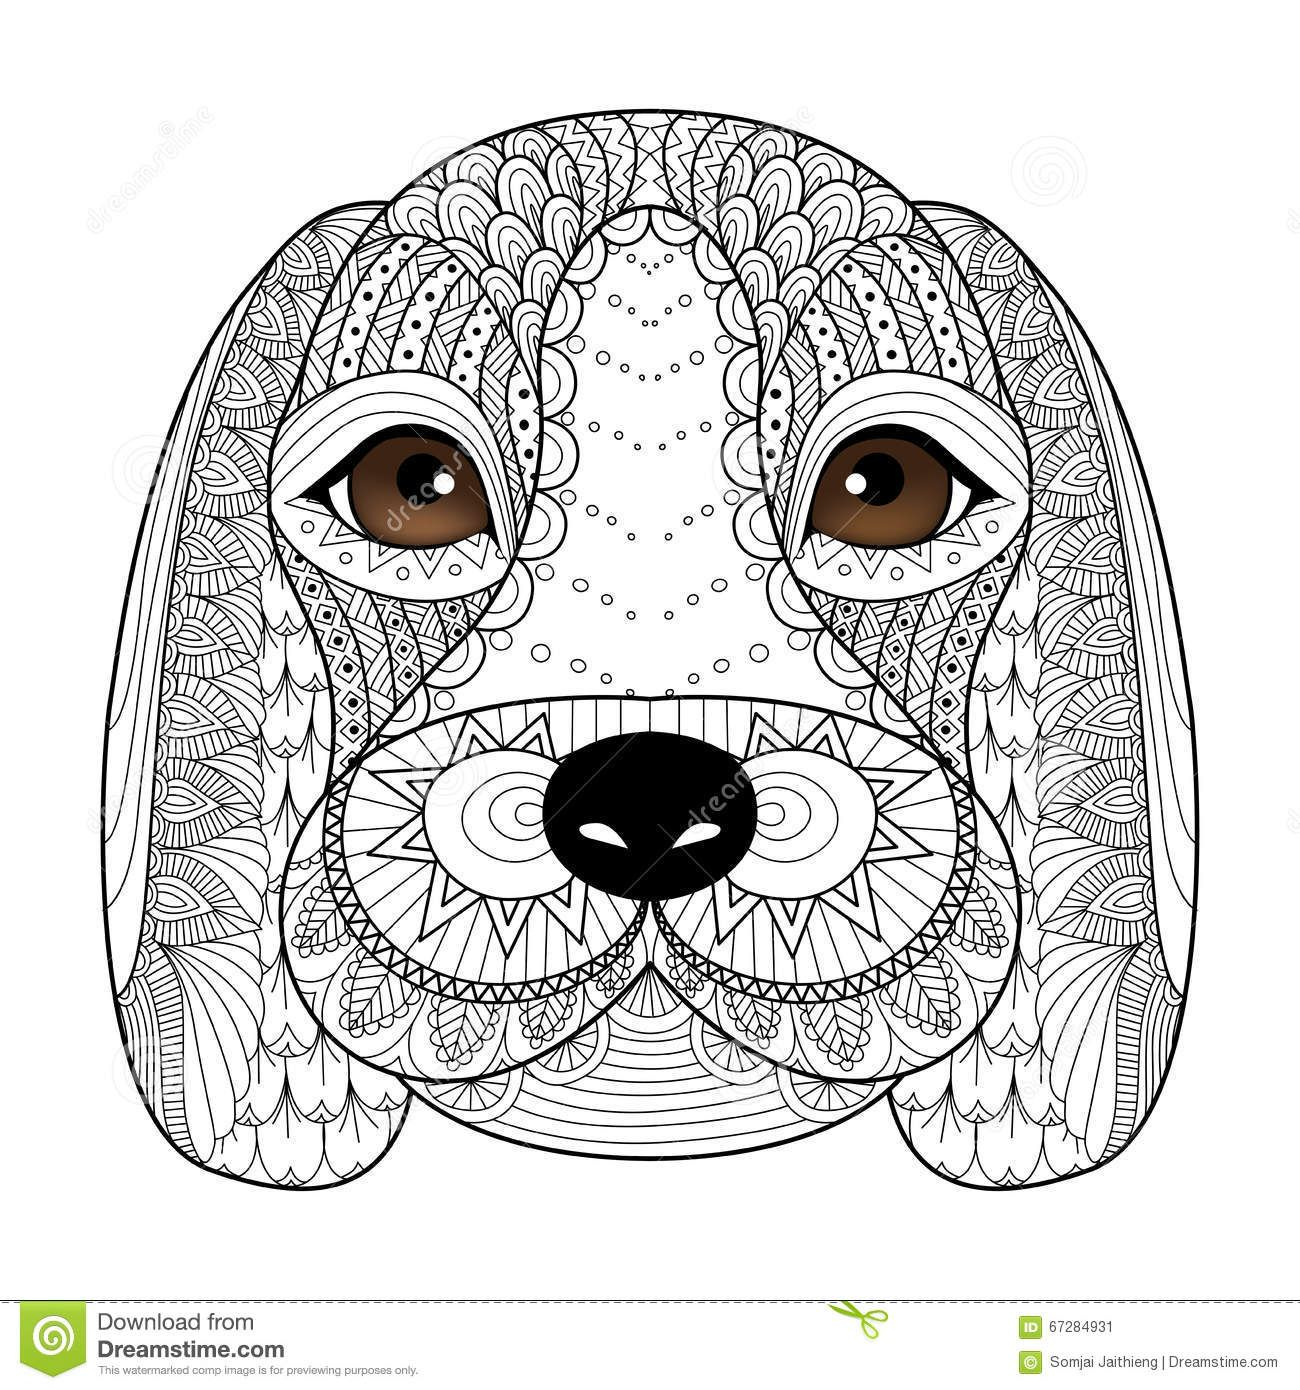 Beagle Puppy Line Art For Coloring Book For Adult, T-shirt Design ...